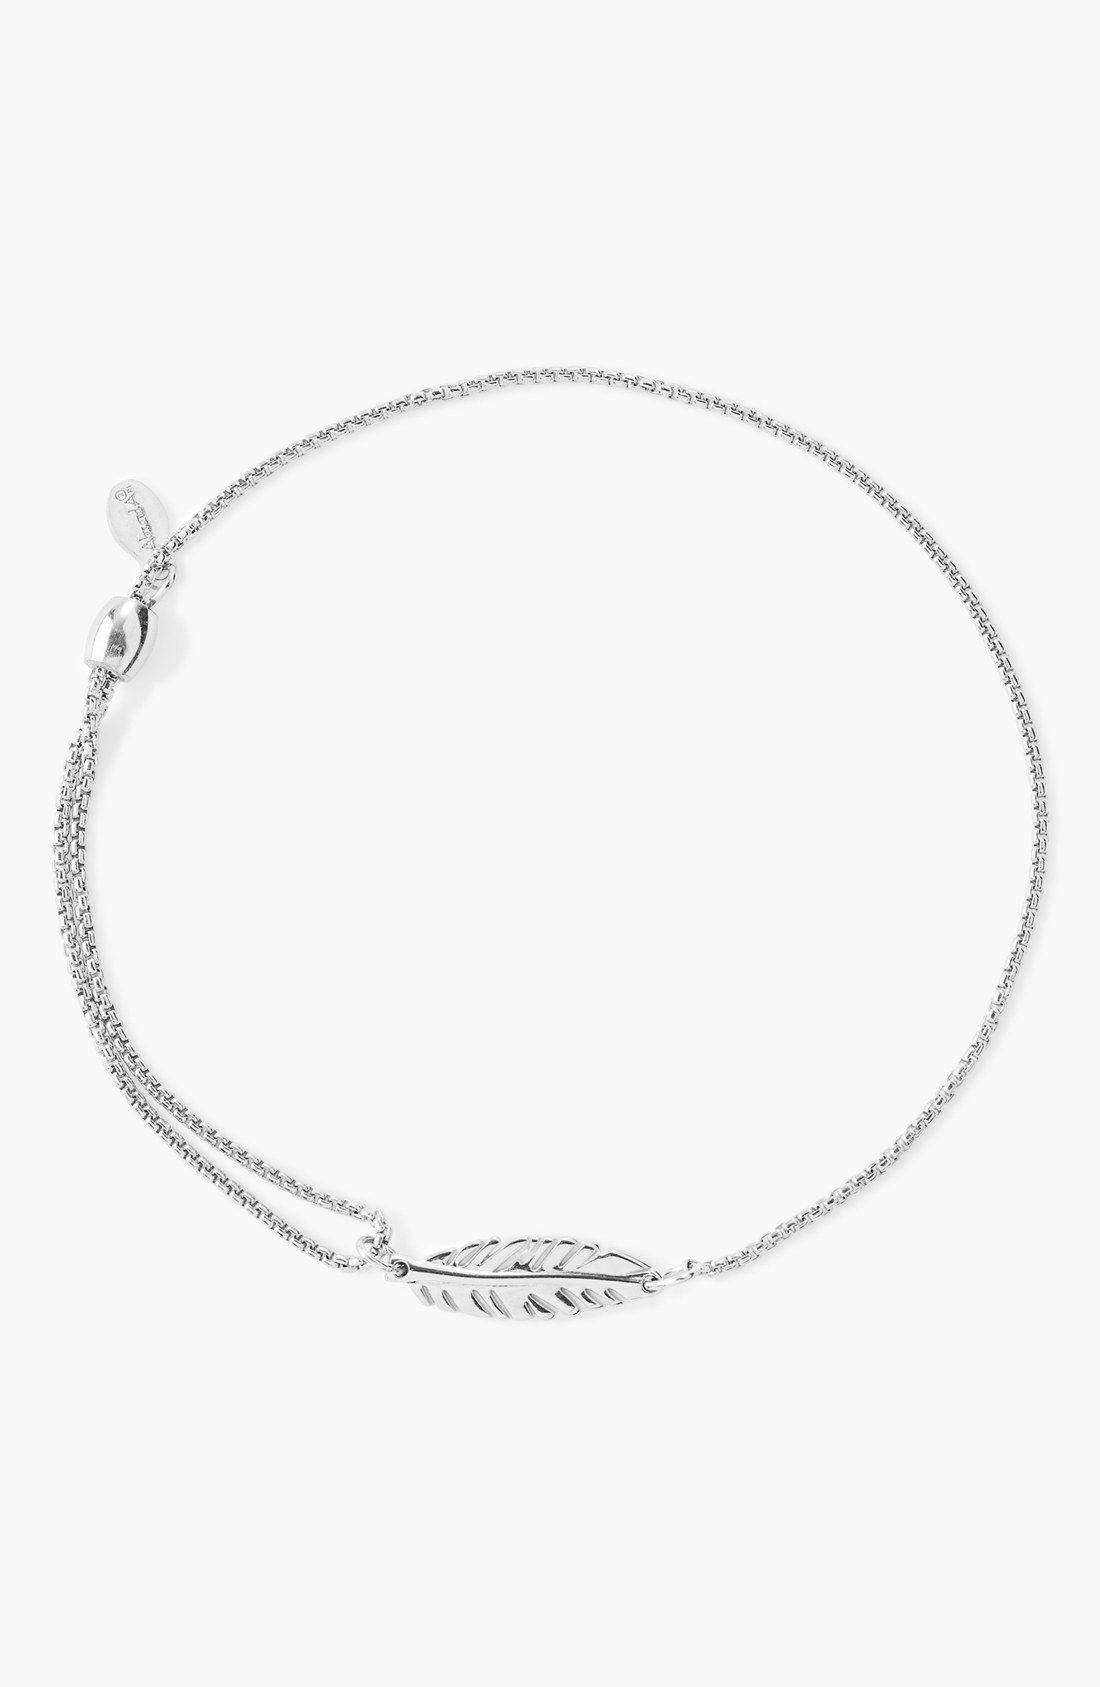 Alex And Ani Pull Chain Cross Bracelet Stunning Alex And Ani 'providence' Feather Pull Chain Bracelet  Nordstrom Design Ideas